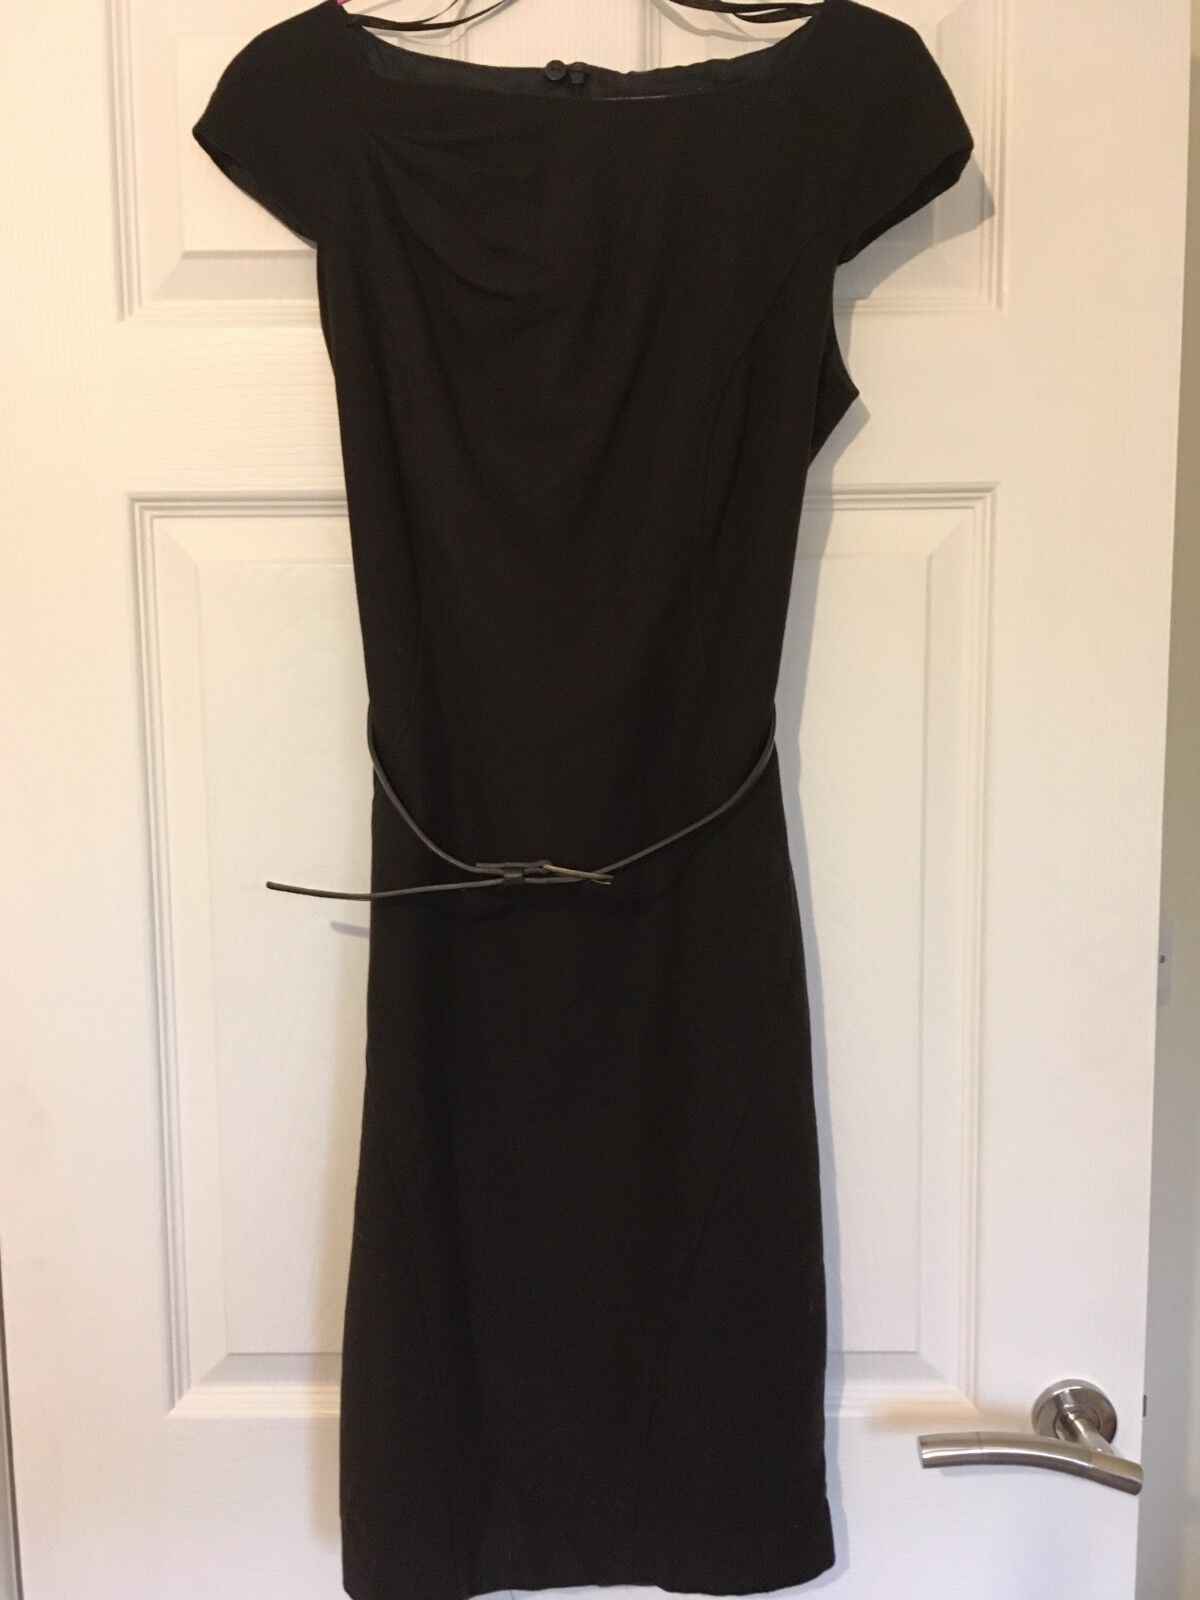 Next chocolate brown pencil work dress with belt size 8 XS